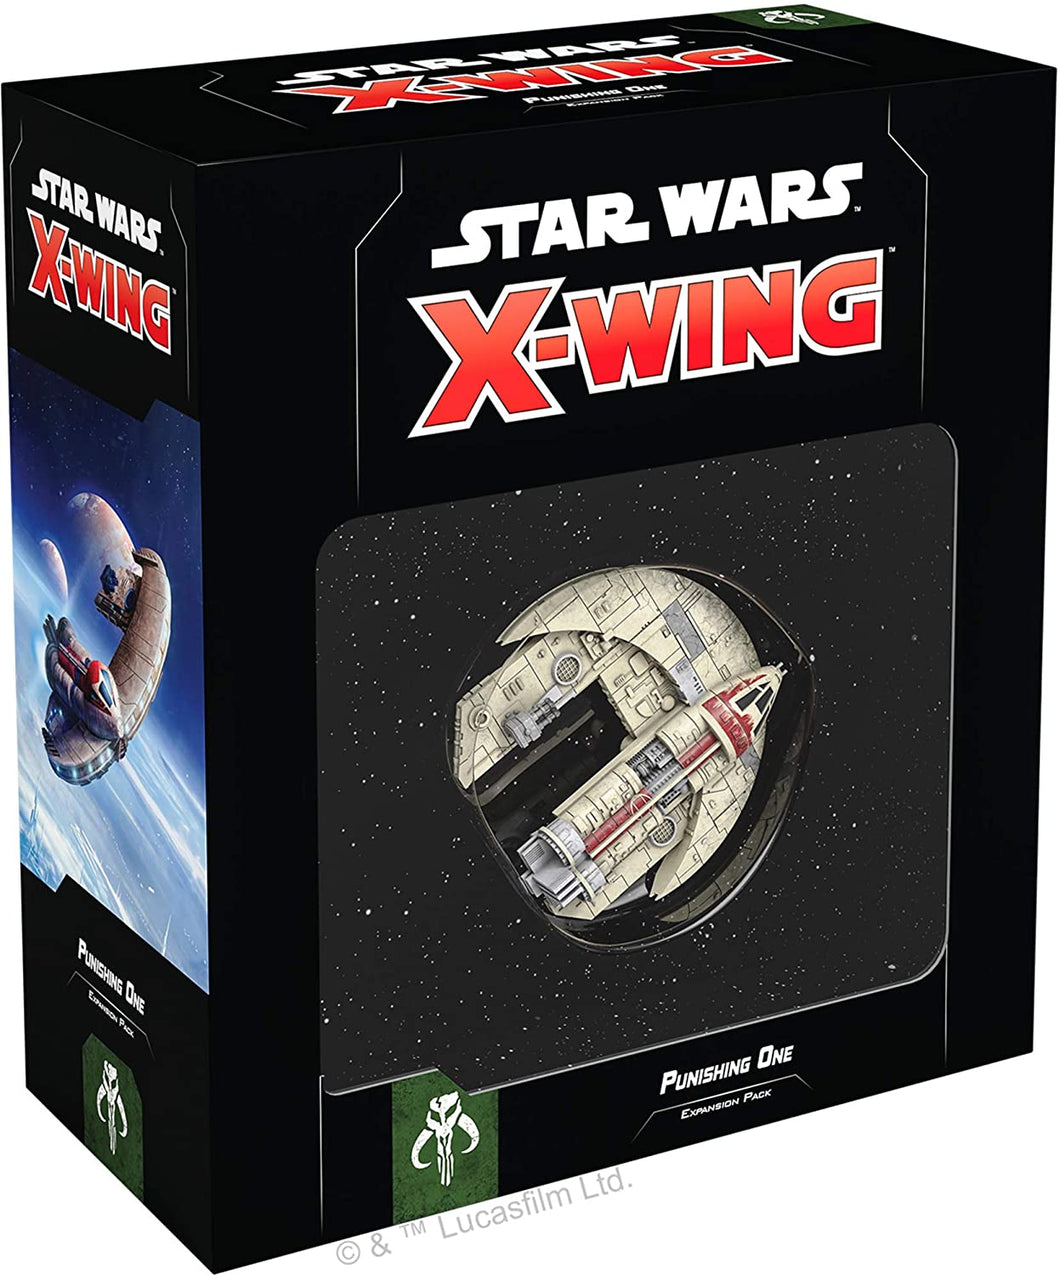 Star Wars X-Wing 2nd Edition: Punishing One Expansion Pack - Indigo Chase Specialties